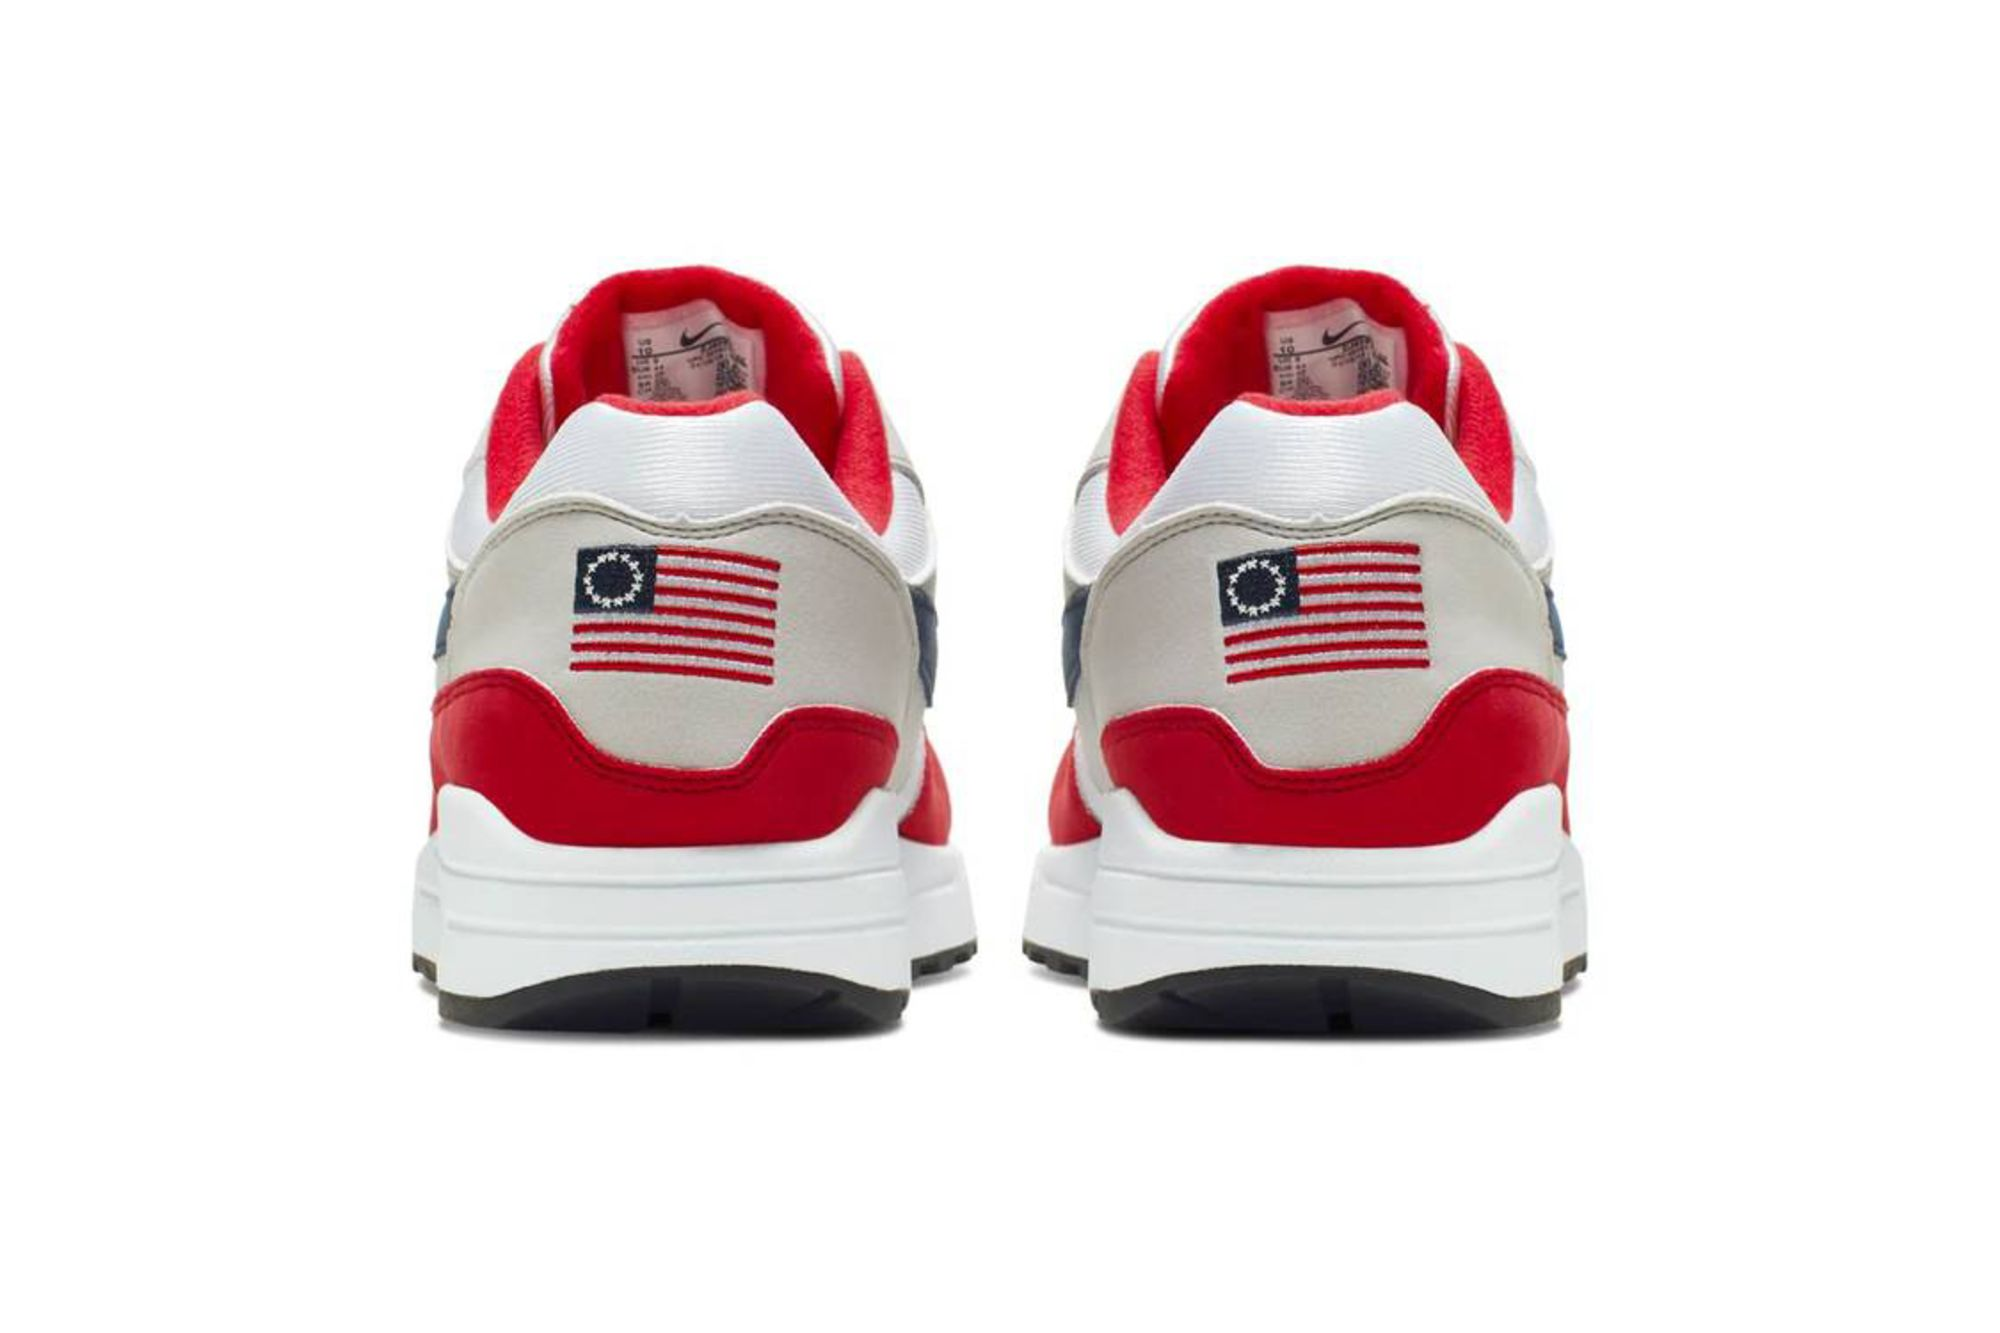 relates to Nike Pulls 'Betsy Ross Flag' Sneakers After Kaepernick Complaint